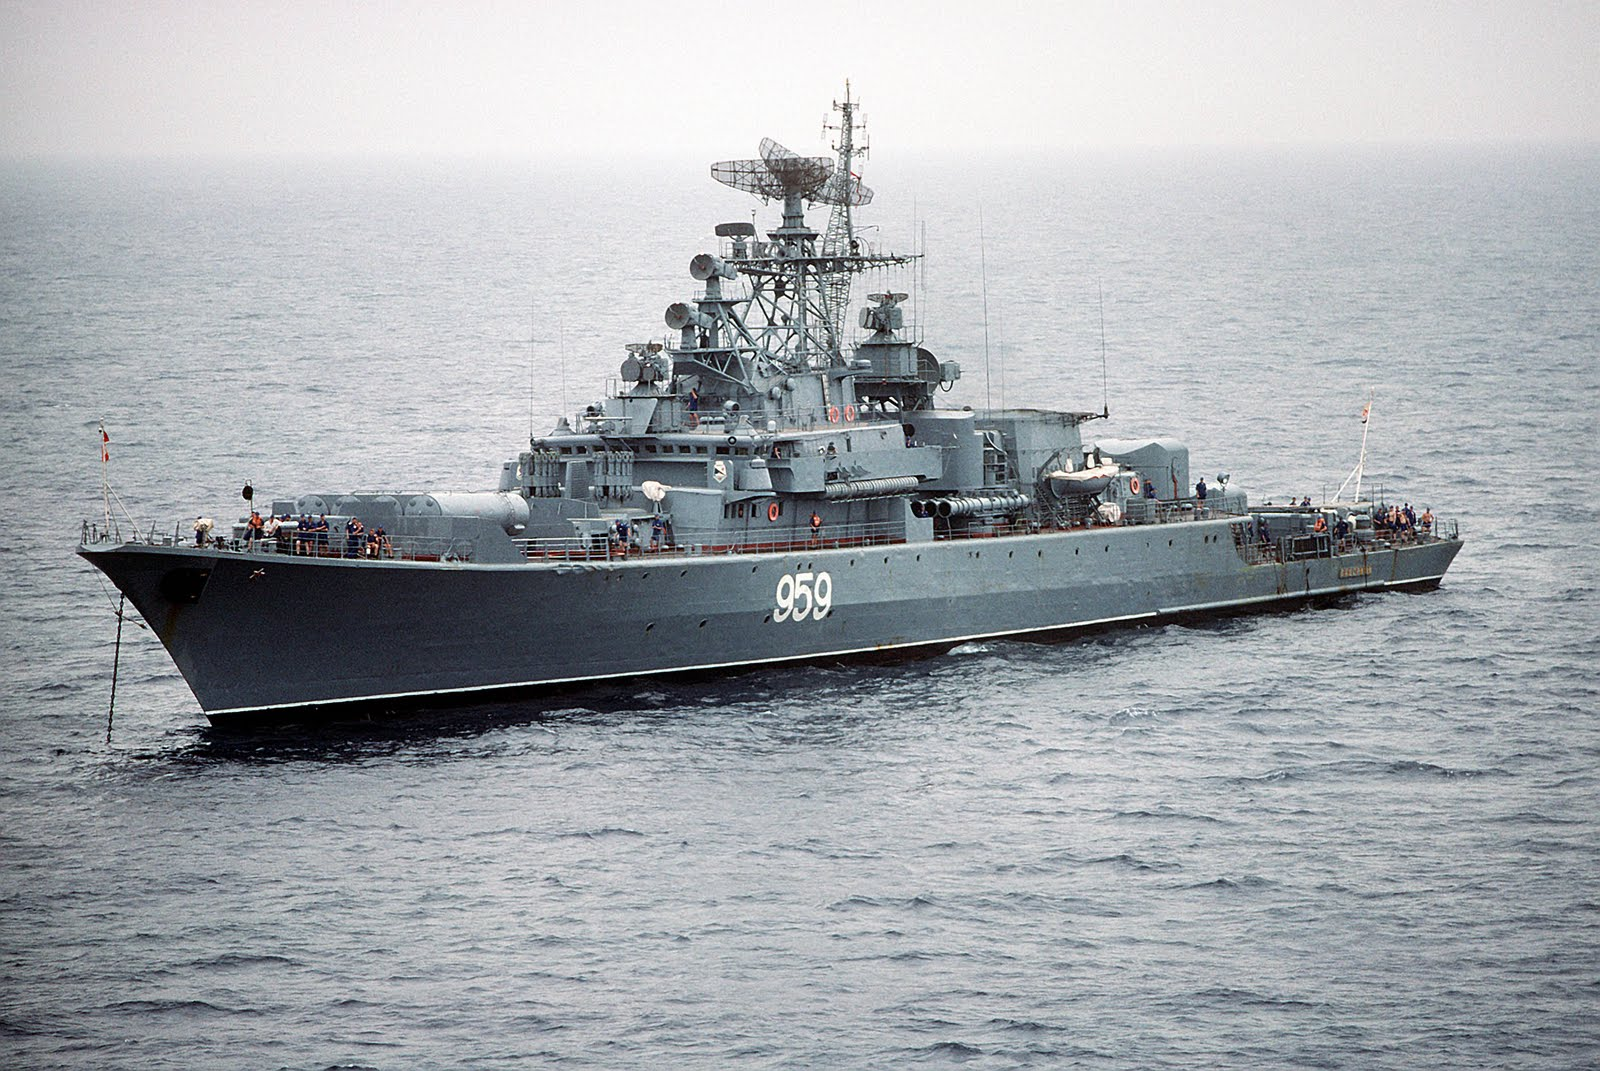 A port bow view of the Soviet Krivak I Class guided missile frigate 959 at anchor.